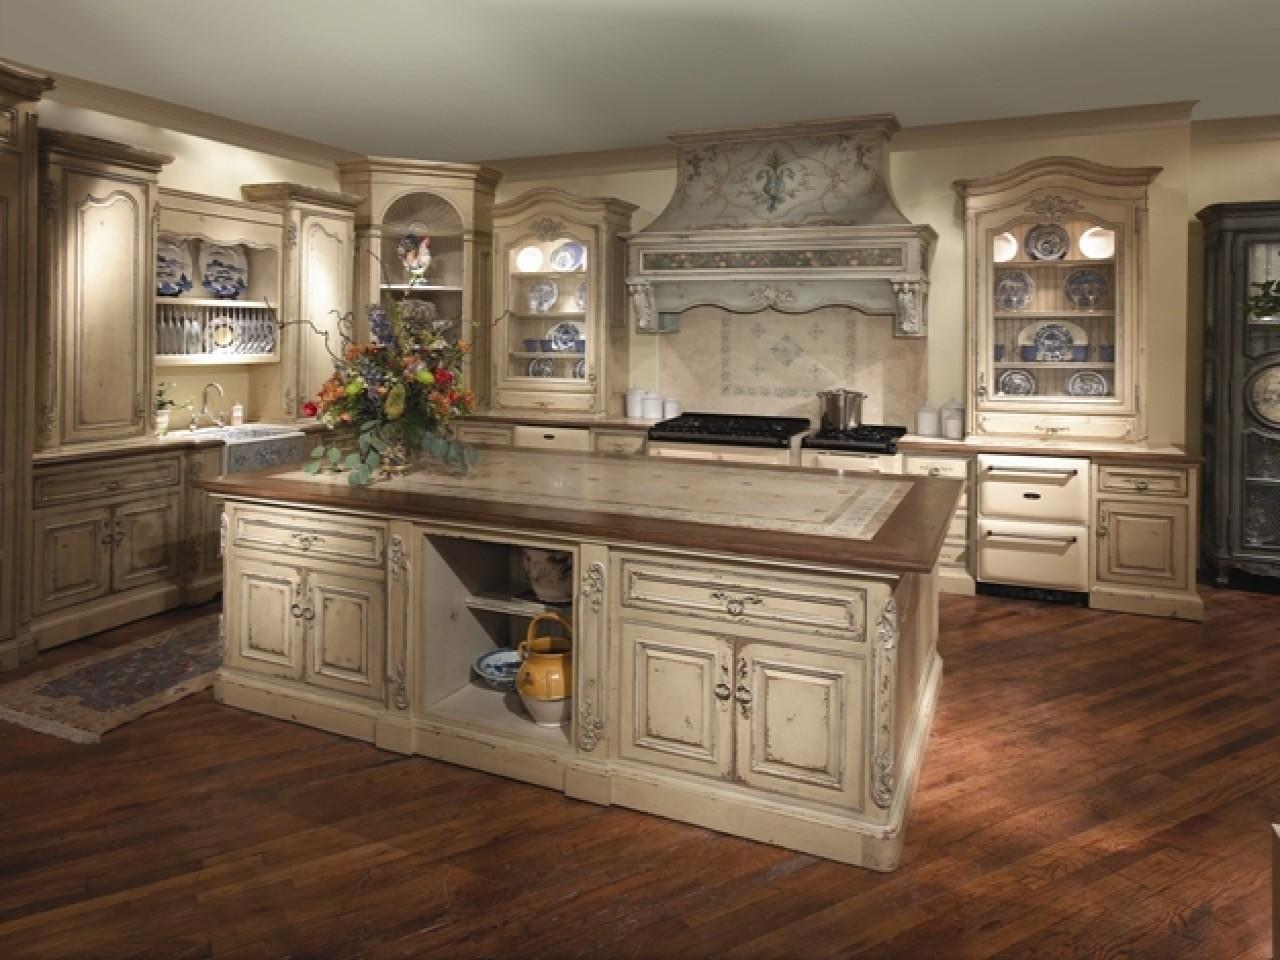 French Country Kitchens Large Kitchen